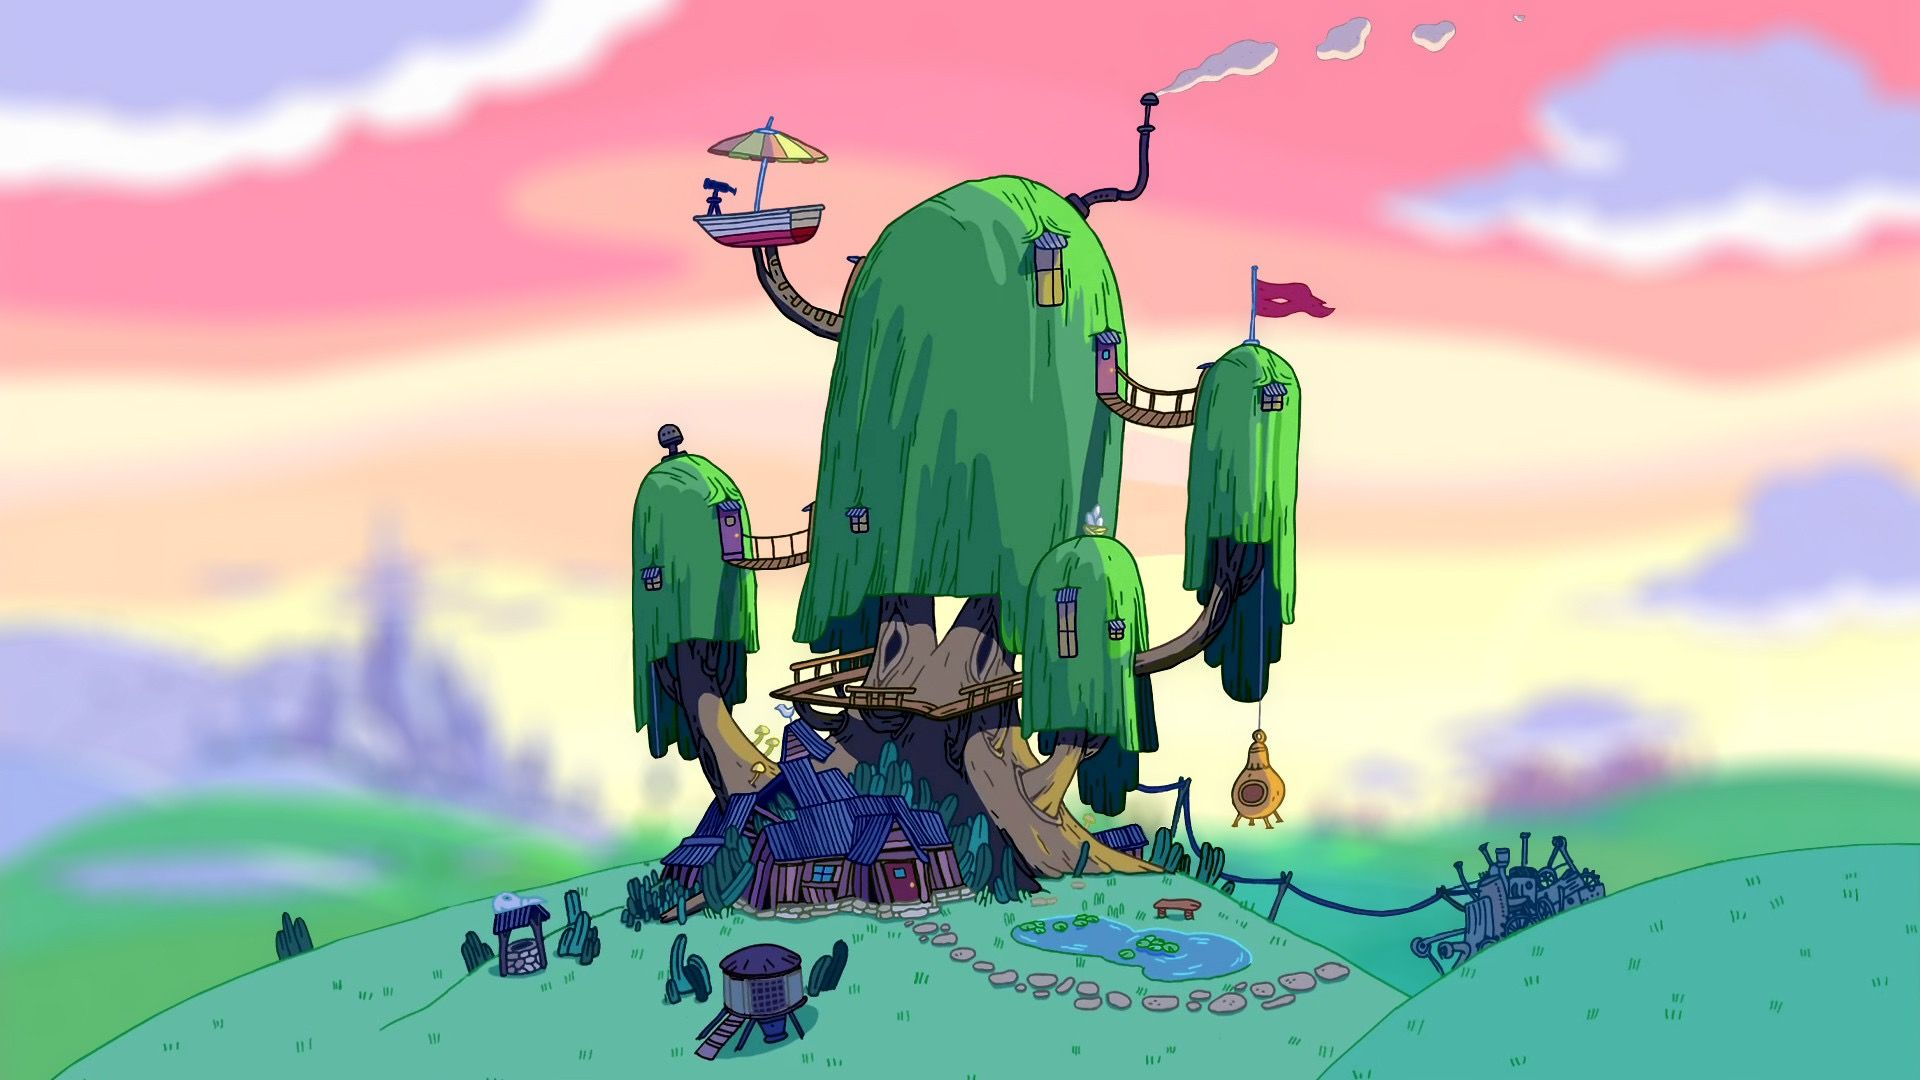 best website 06462 352c9 Adventure Time Background, Adventure Time Wallpaper, Adventure Time Tattoo, Adventure  Time Anime,